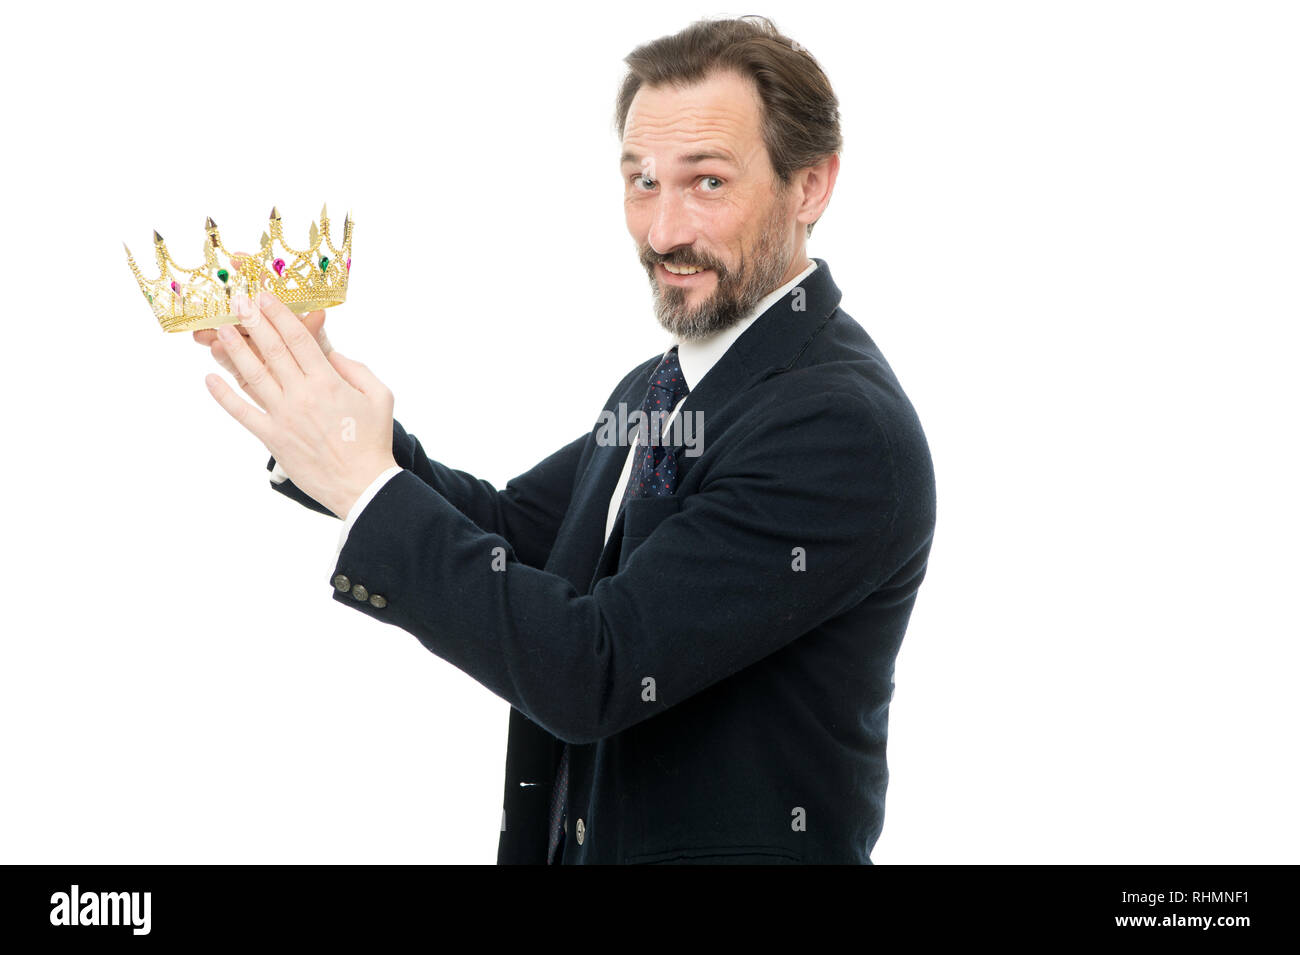 Become next king. Monarchy family traditions. King attribute. Man nature bearded guy in suit hold golden crown symbol of monarchy. Direct line to throne. Enormous privilege. Become king ceremony. - Stock Image